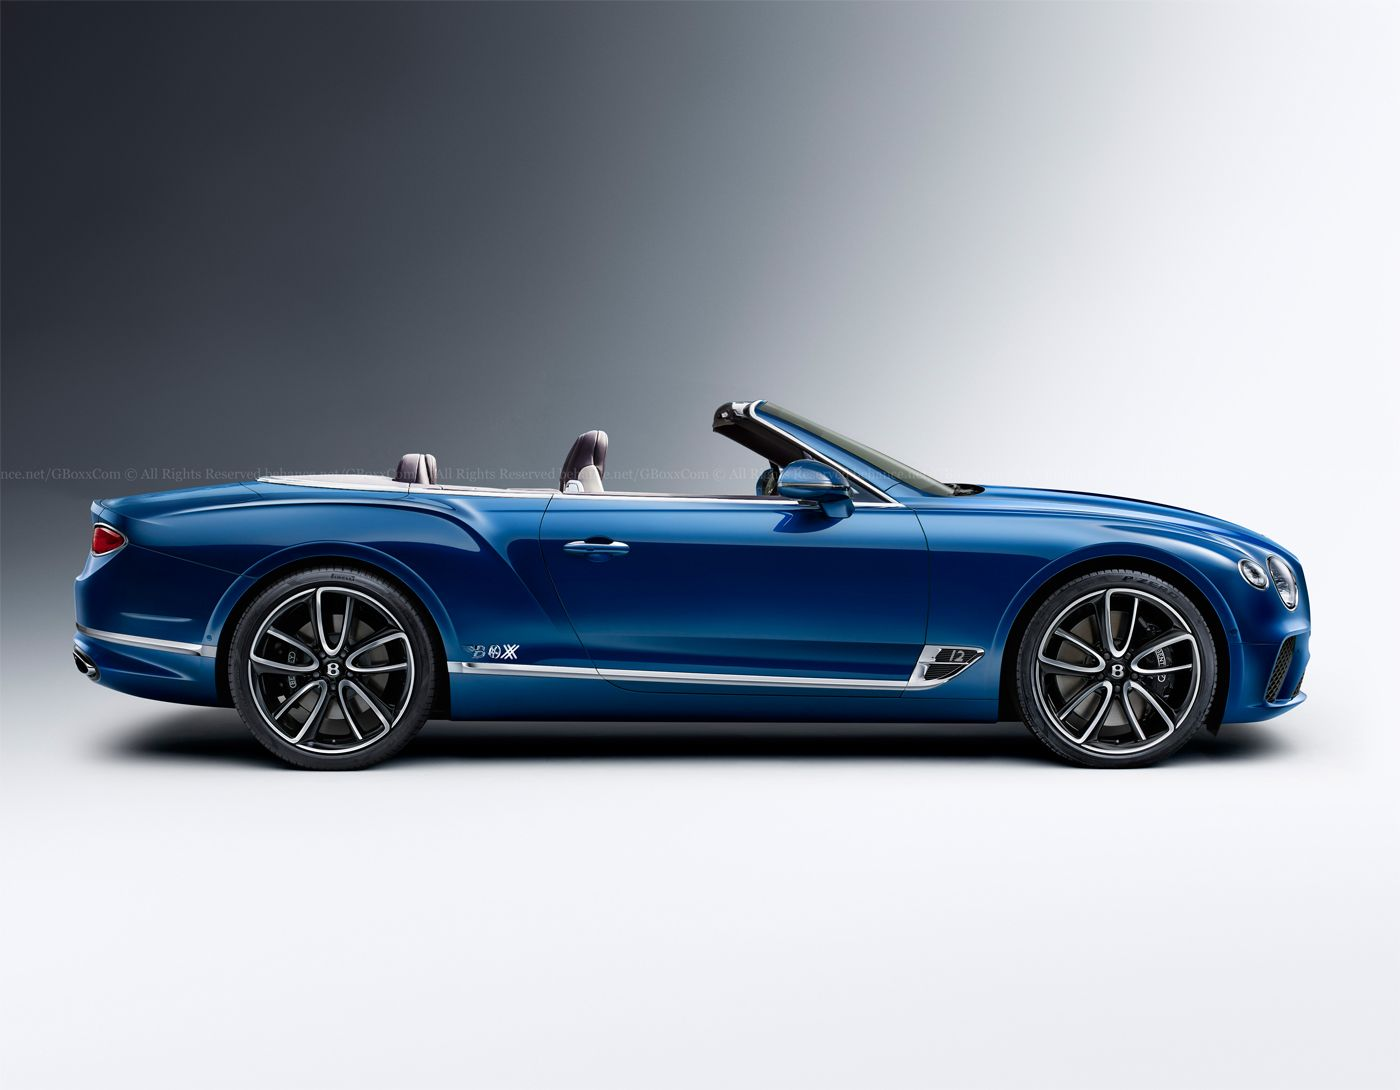 Yes A 2018 Bentley Continental Gt Cabriolet Would Look Like This Carscoops Bentley Continental Gt Bentley Continental Bentley Continental Gt Convertible